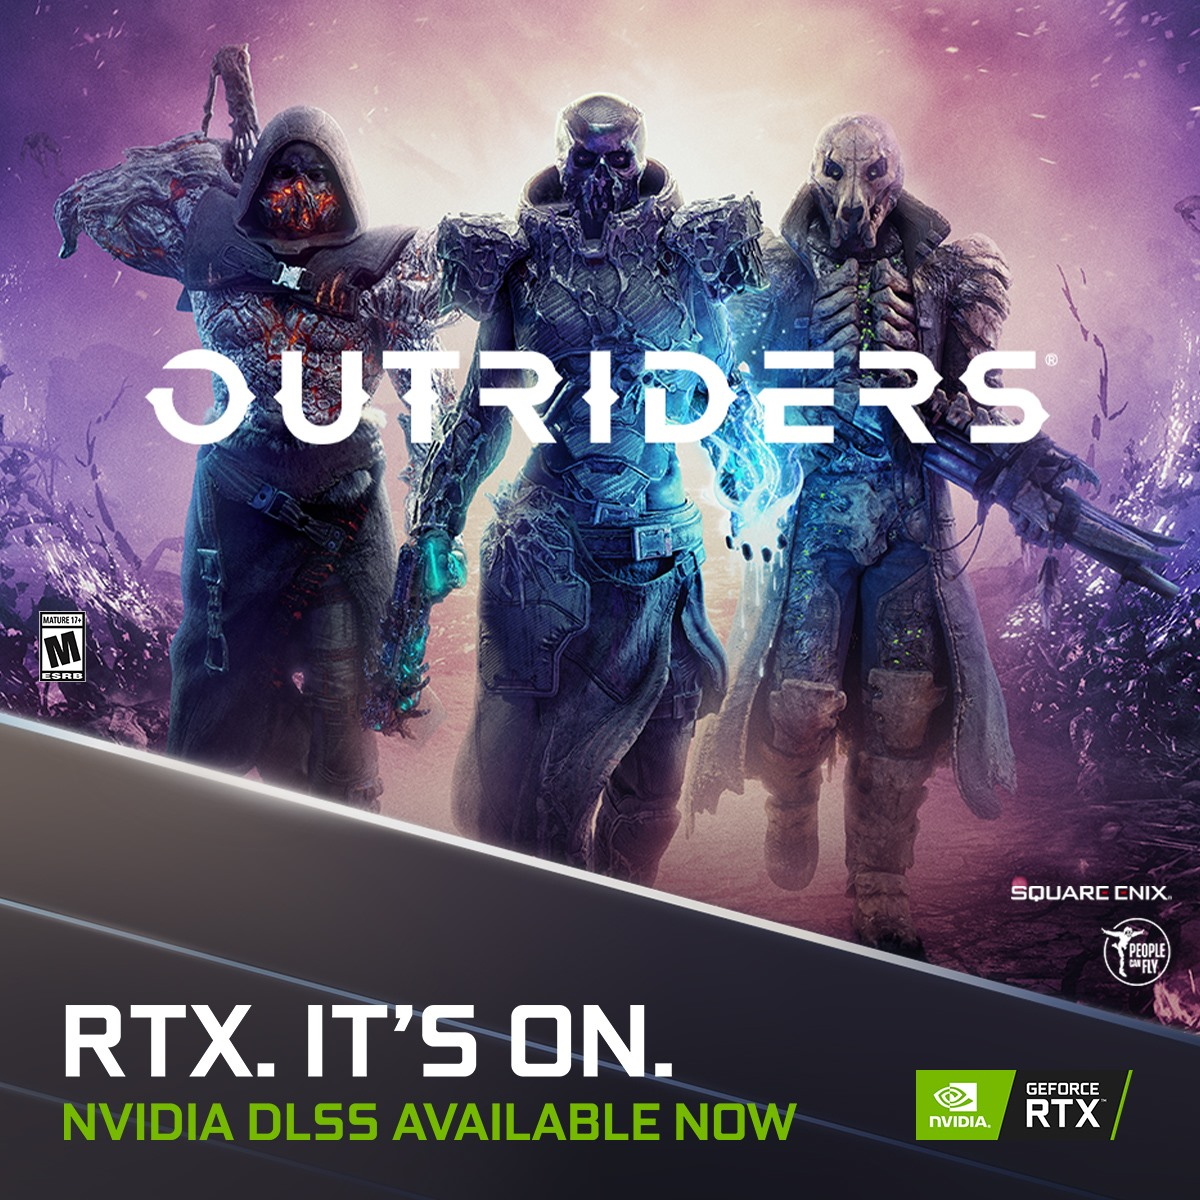 Outriders is now available enhanced with NVIDIA DLSS to accelerate performance by up to 73% at 4K.